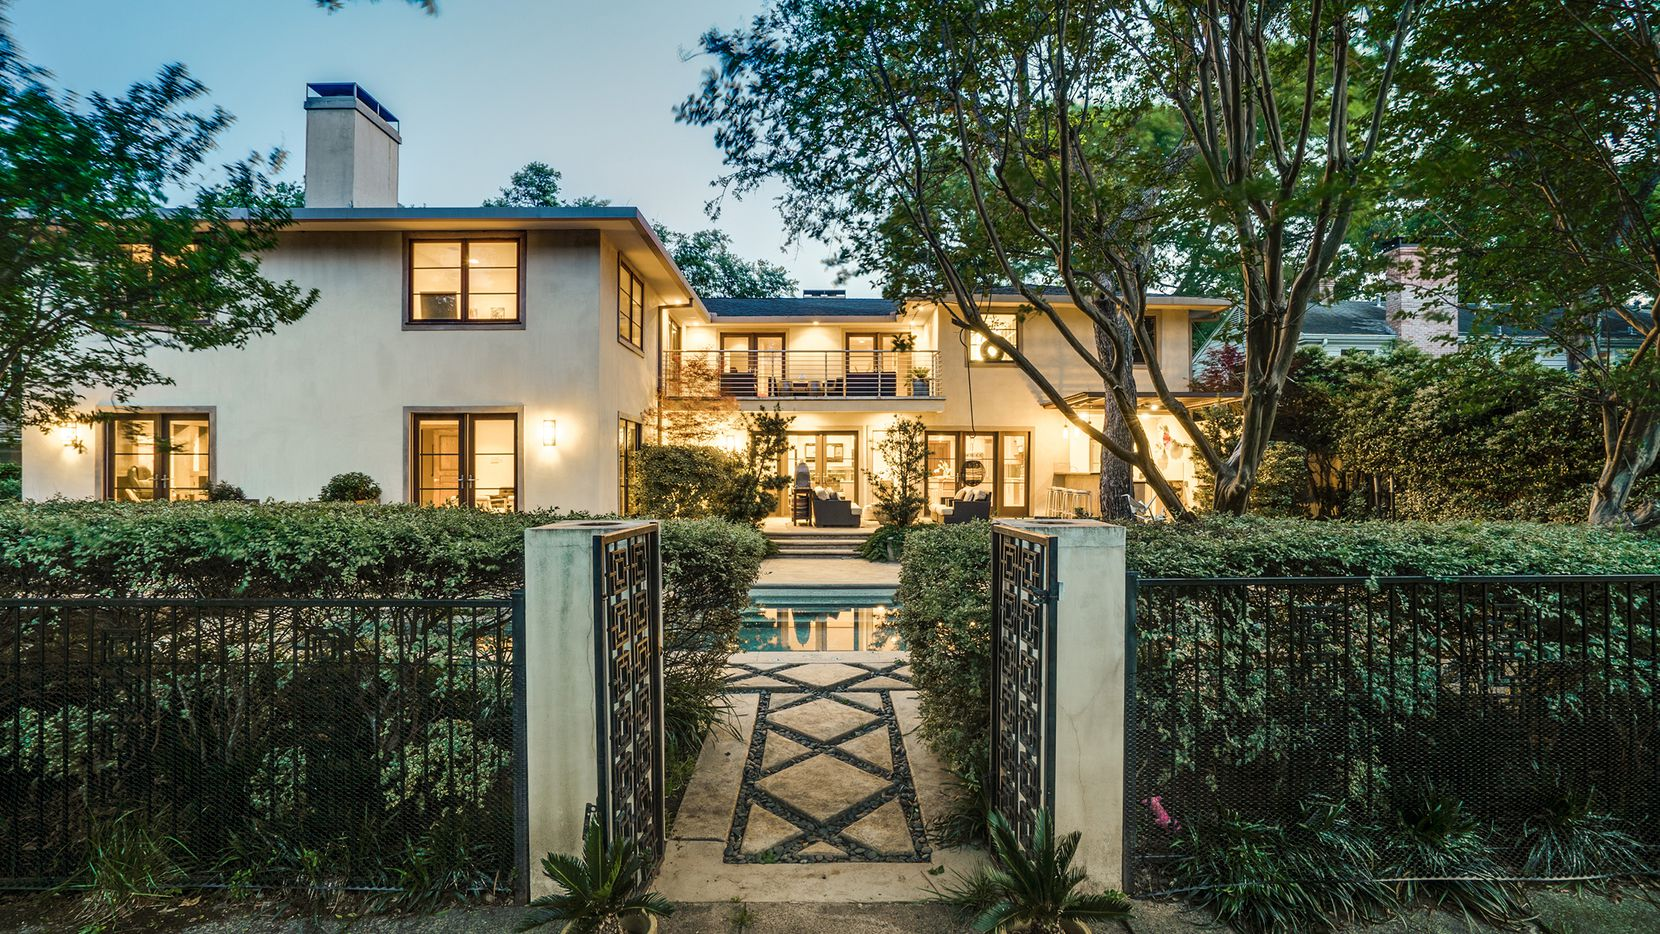 The five-bedroom home at 5539 Montrose Drive was renovated with $60,000 in updates.